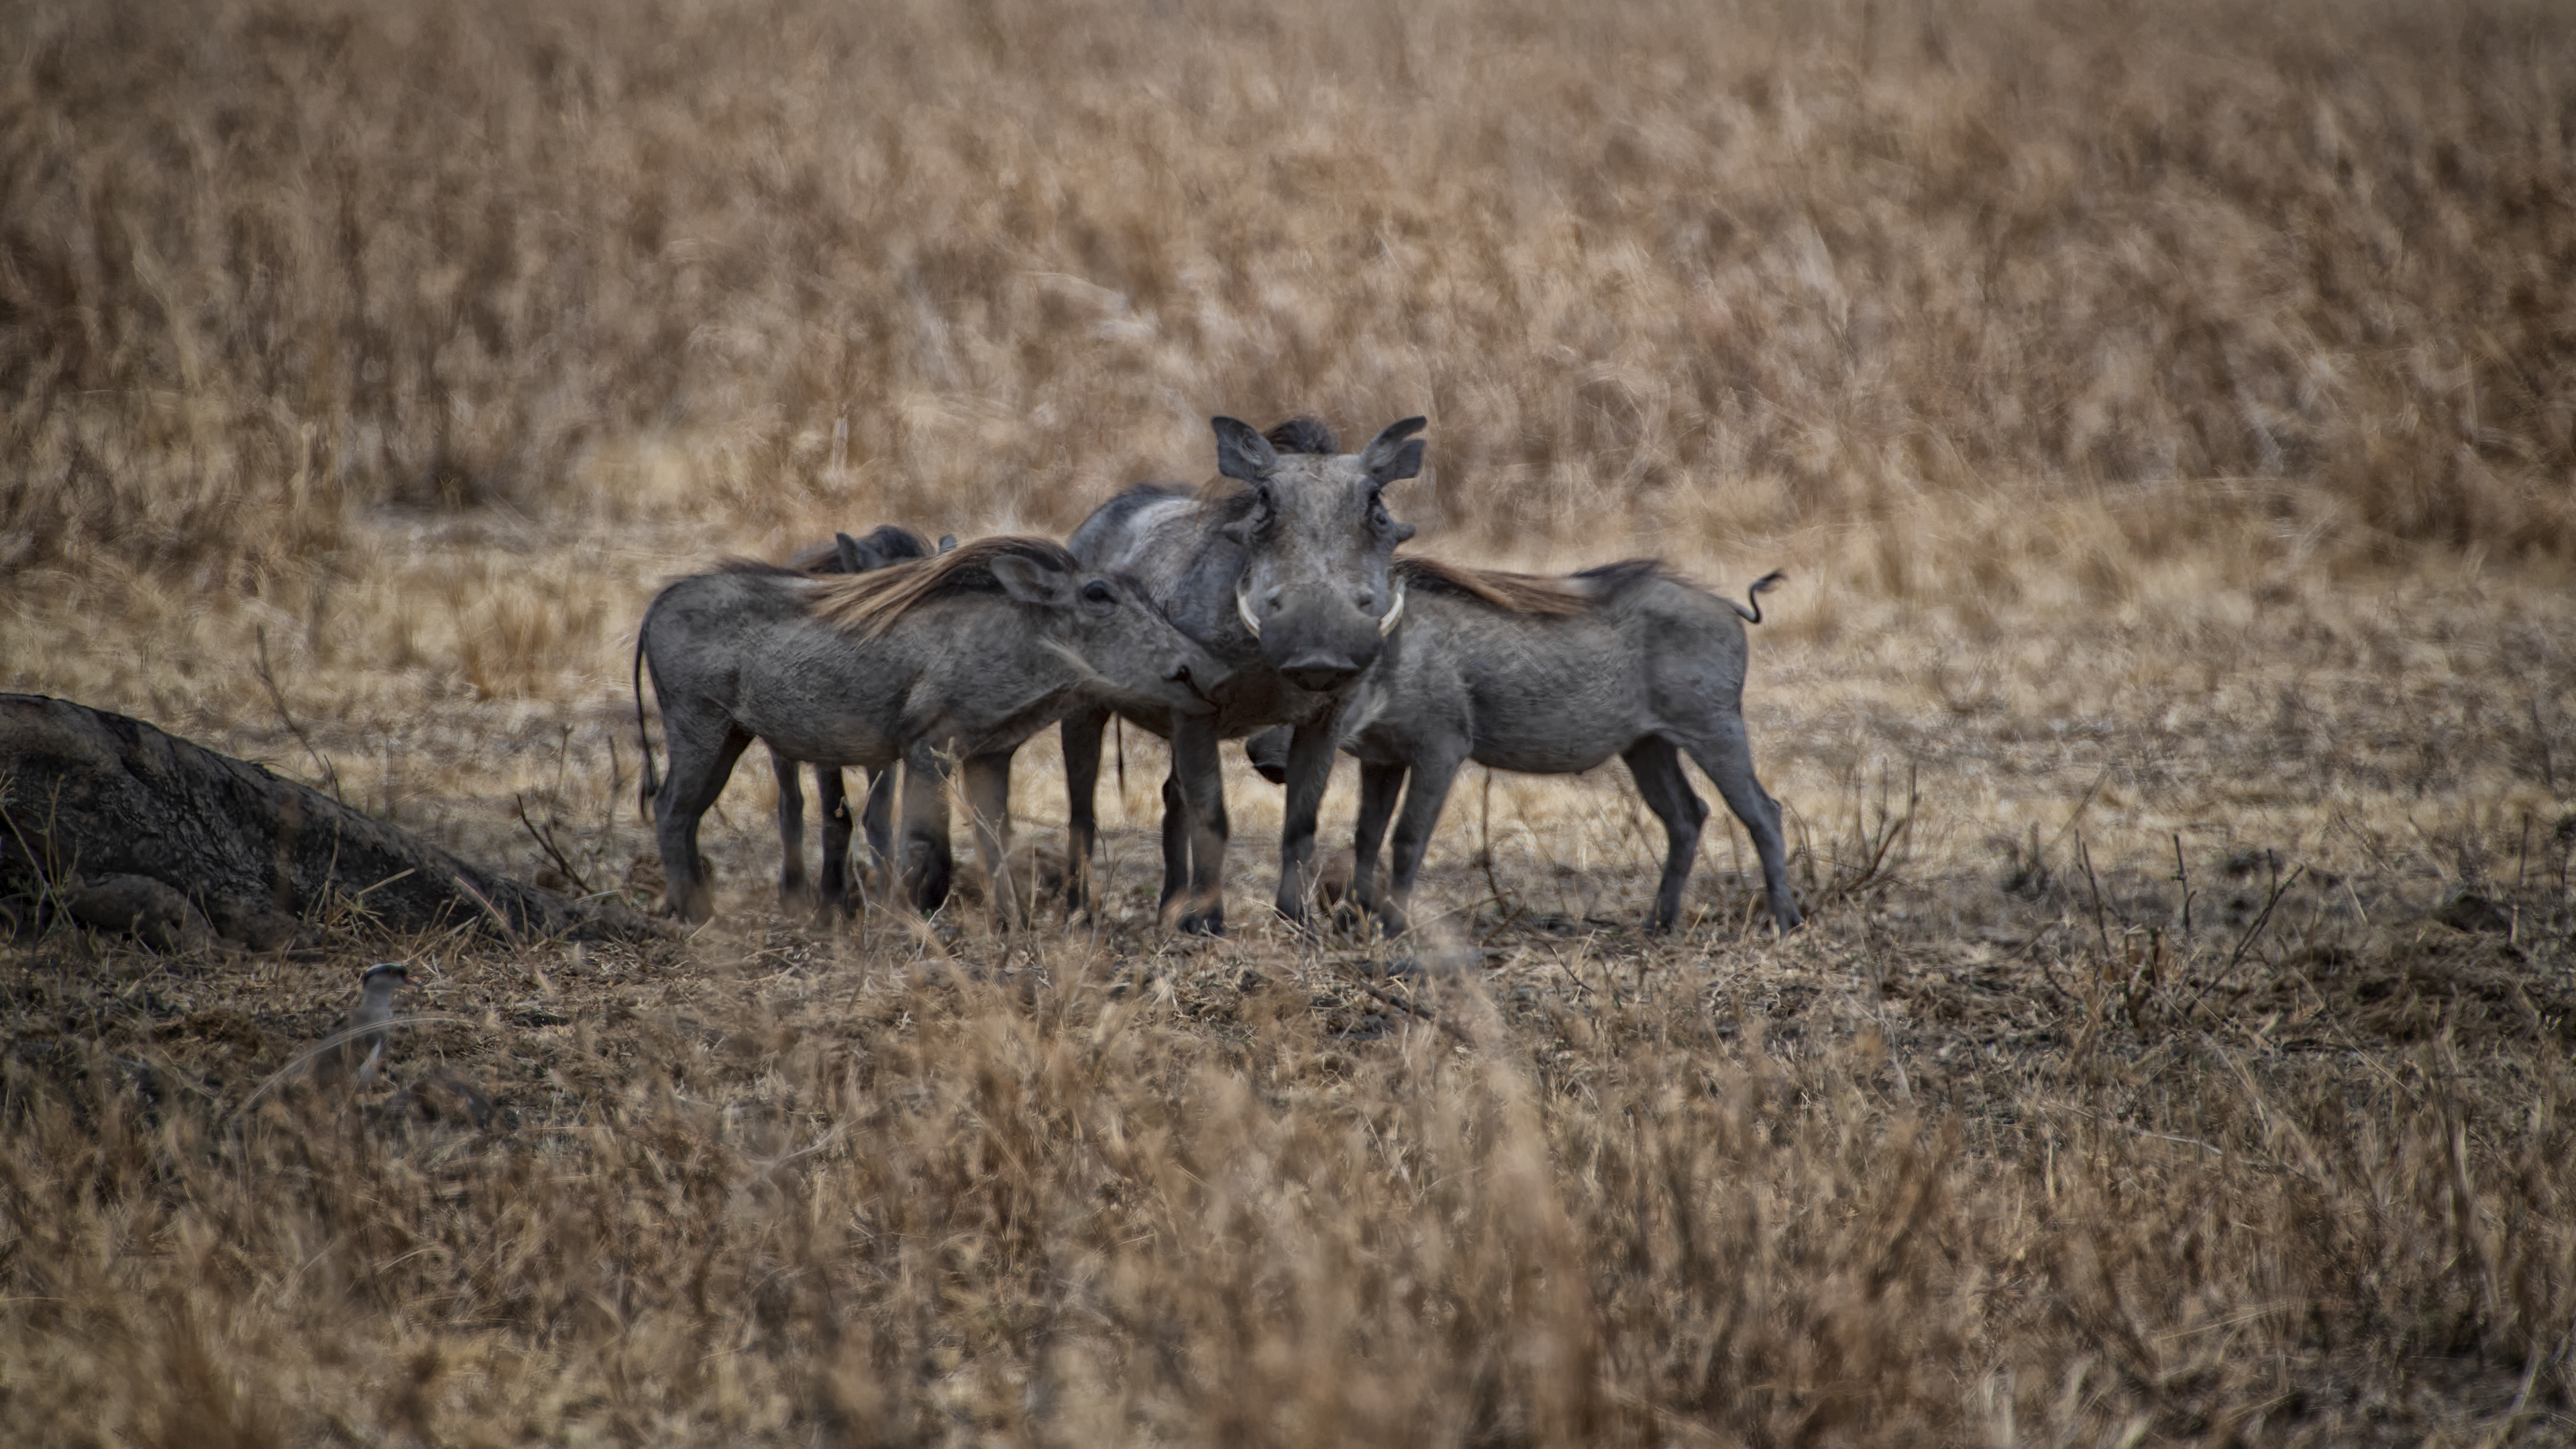 Warthog Convention